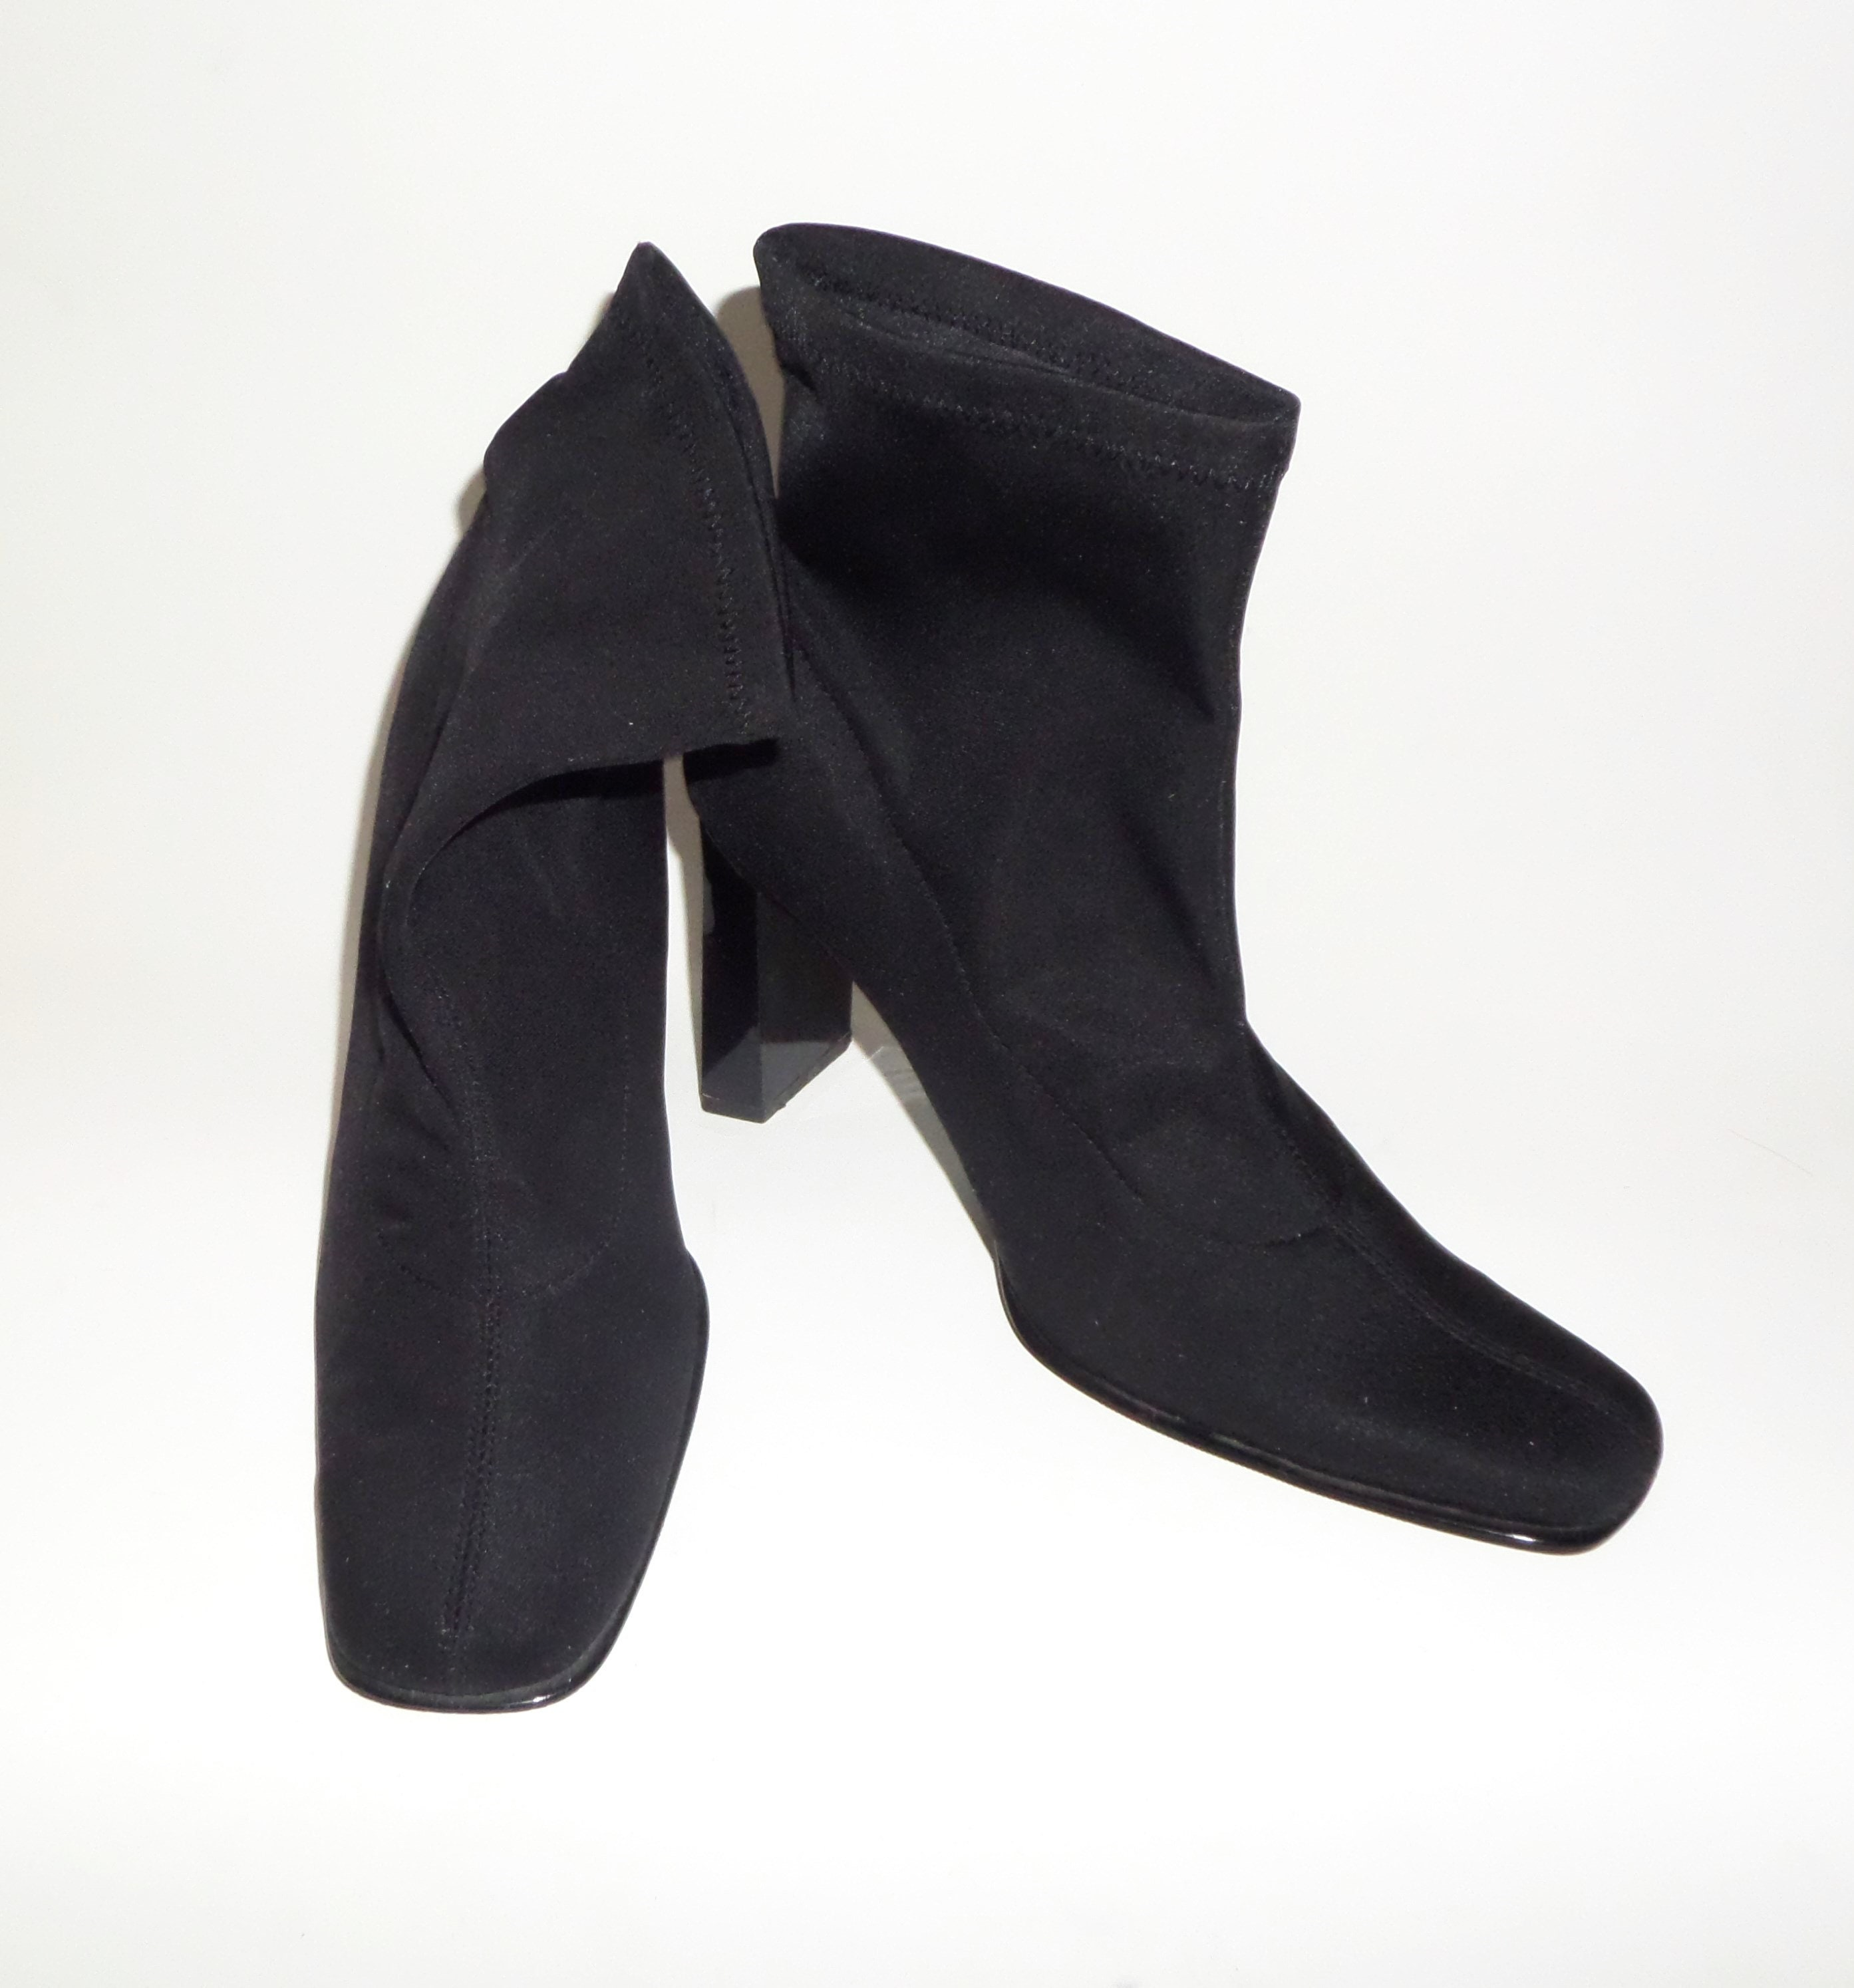 8ffa308b191d0 1990's Vintage VTG Newport News Black Stretch Fabric Square Toe Booties  Boots Shoes 7.5M